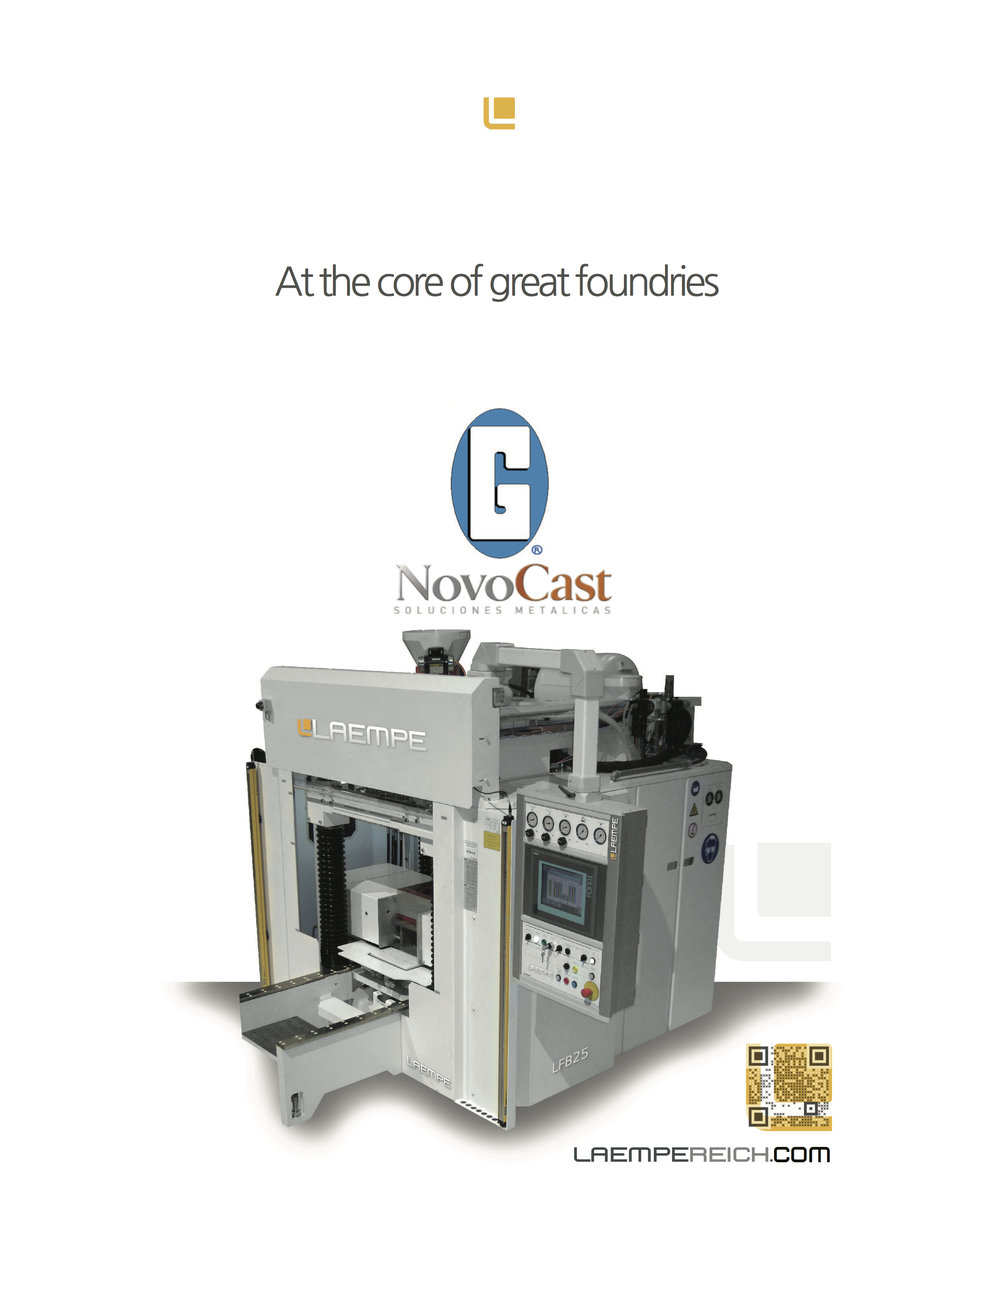 Grede Novocast - Approved Magazine ad - Oct 2014.jpg